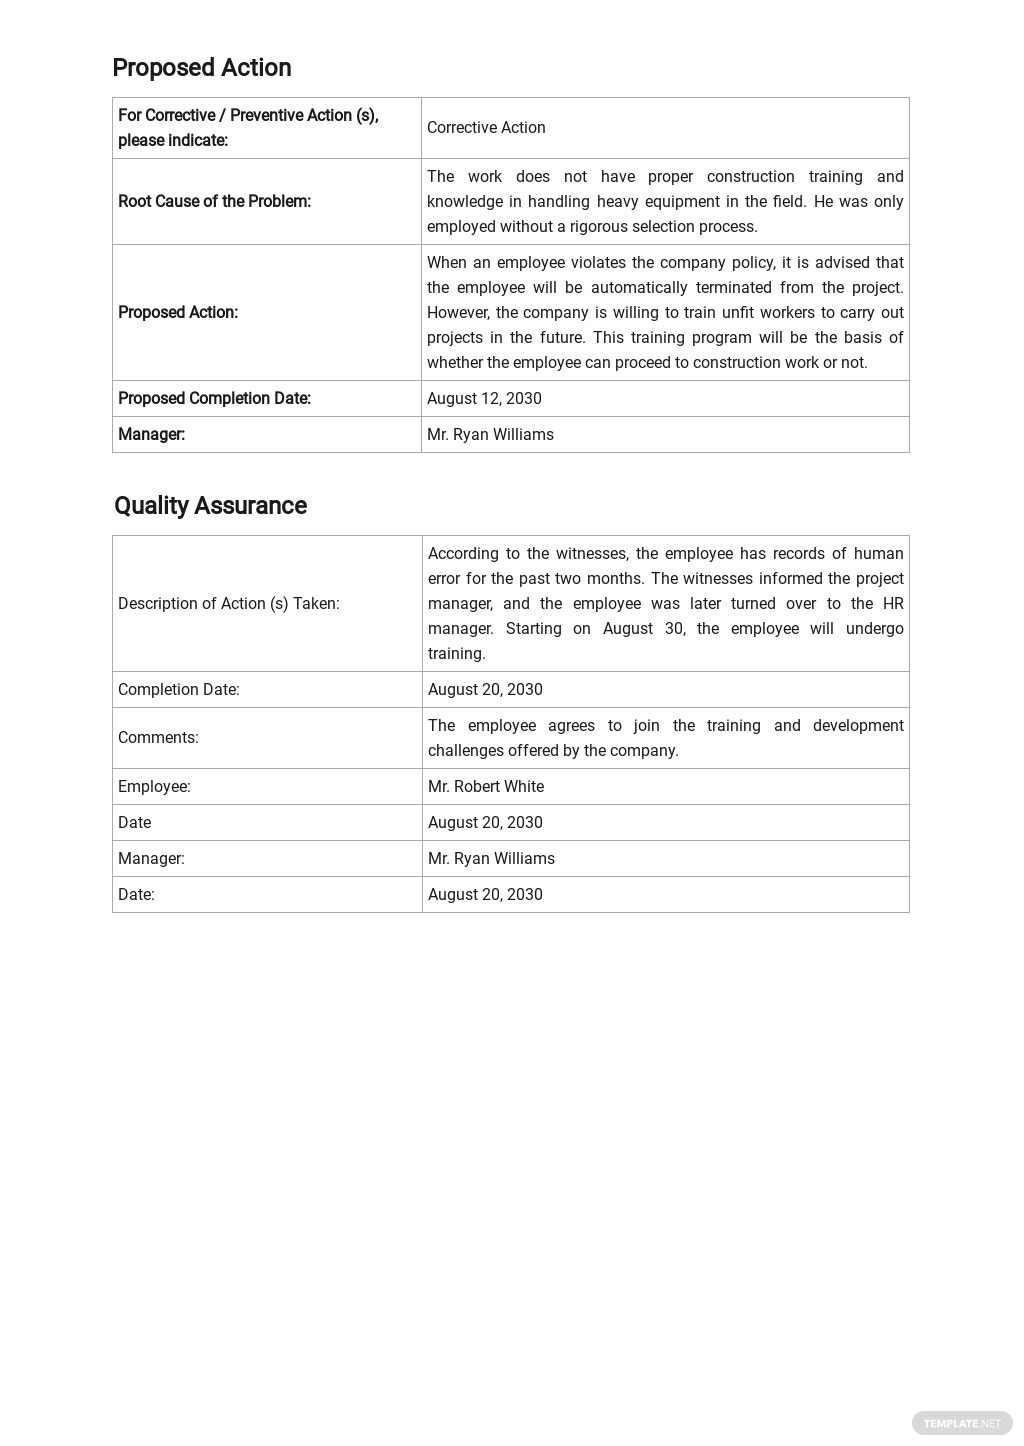 FREE Construction Corrective Action Report Template - Google Docs, Word